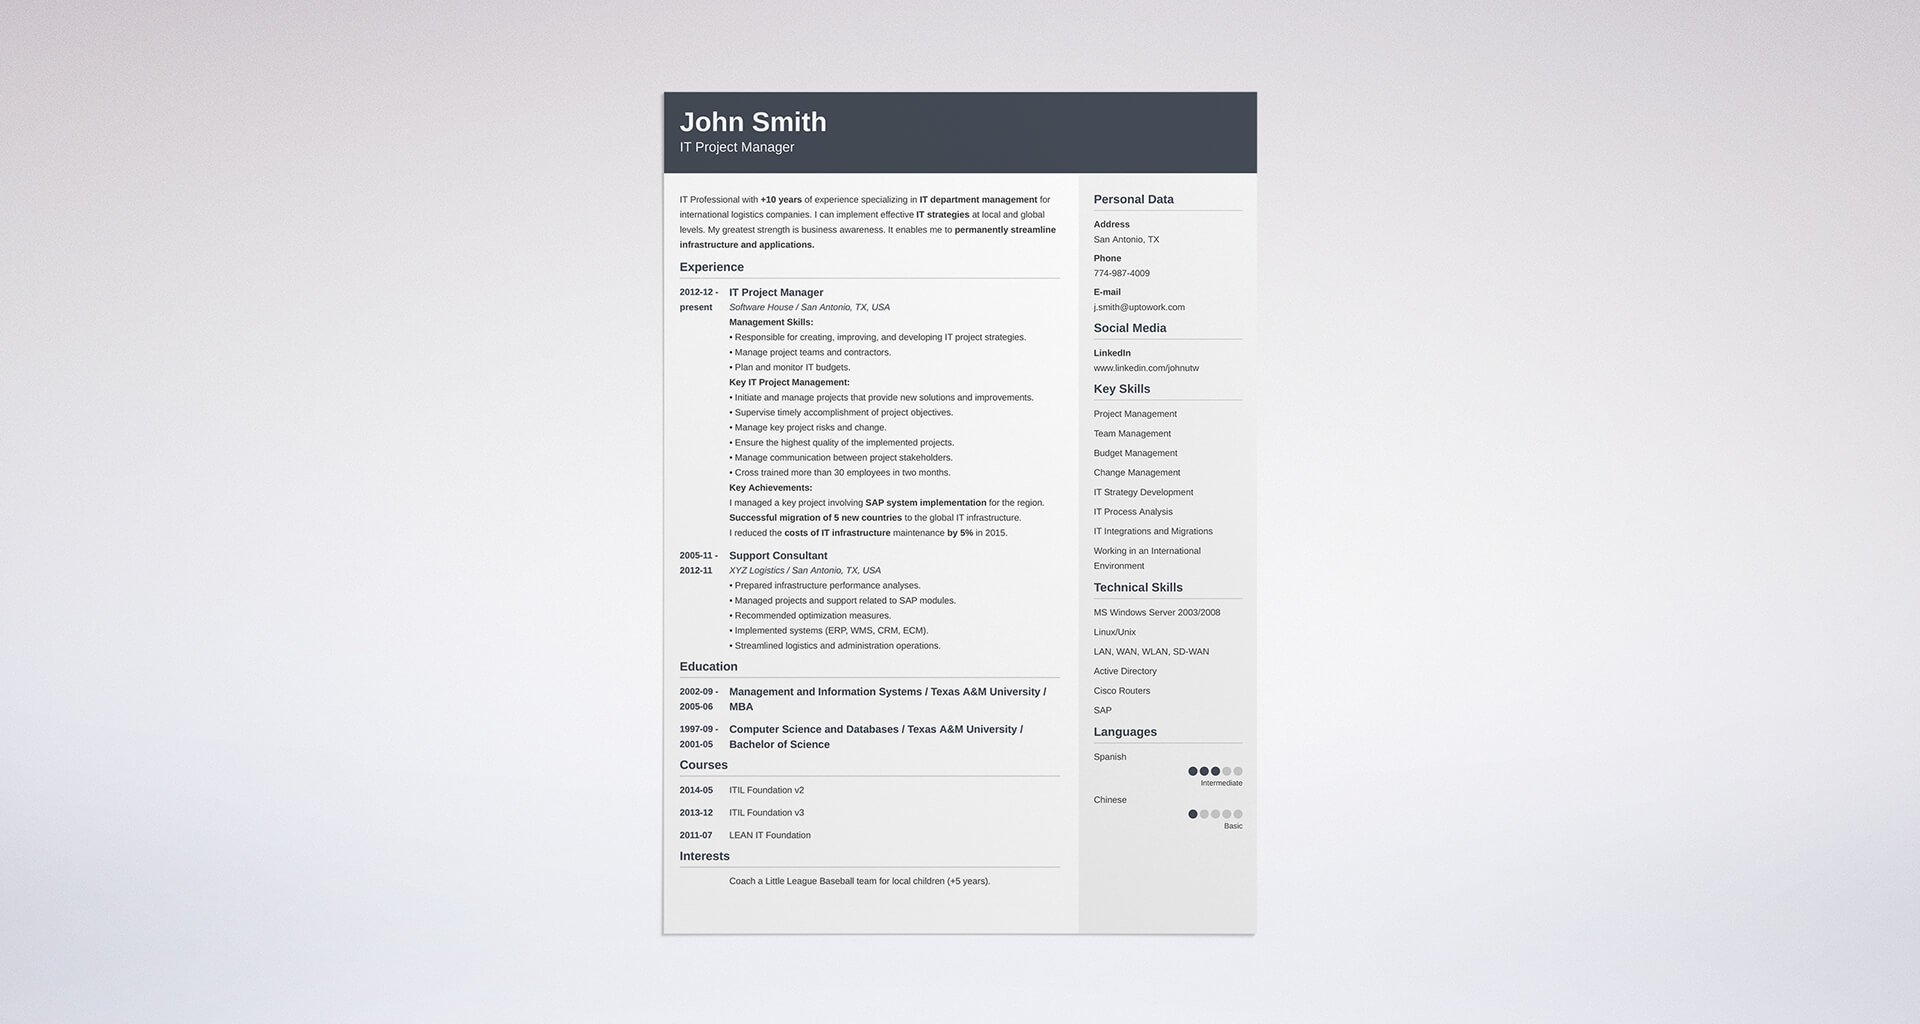 resume formats pick the best one in 3 steps examples templates - Attractive Resume Templates Free Download